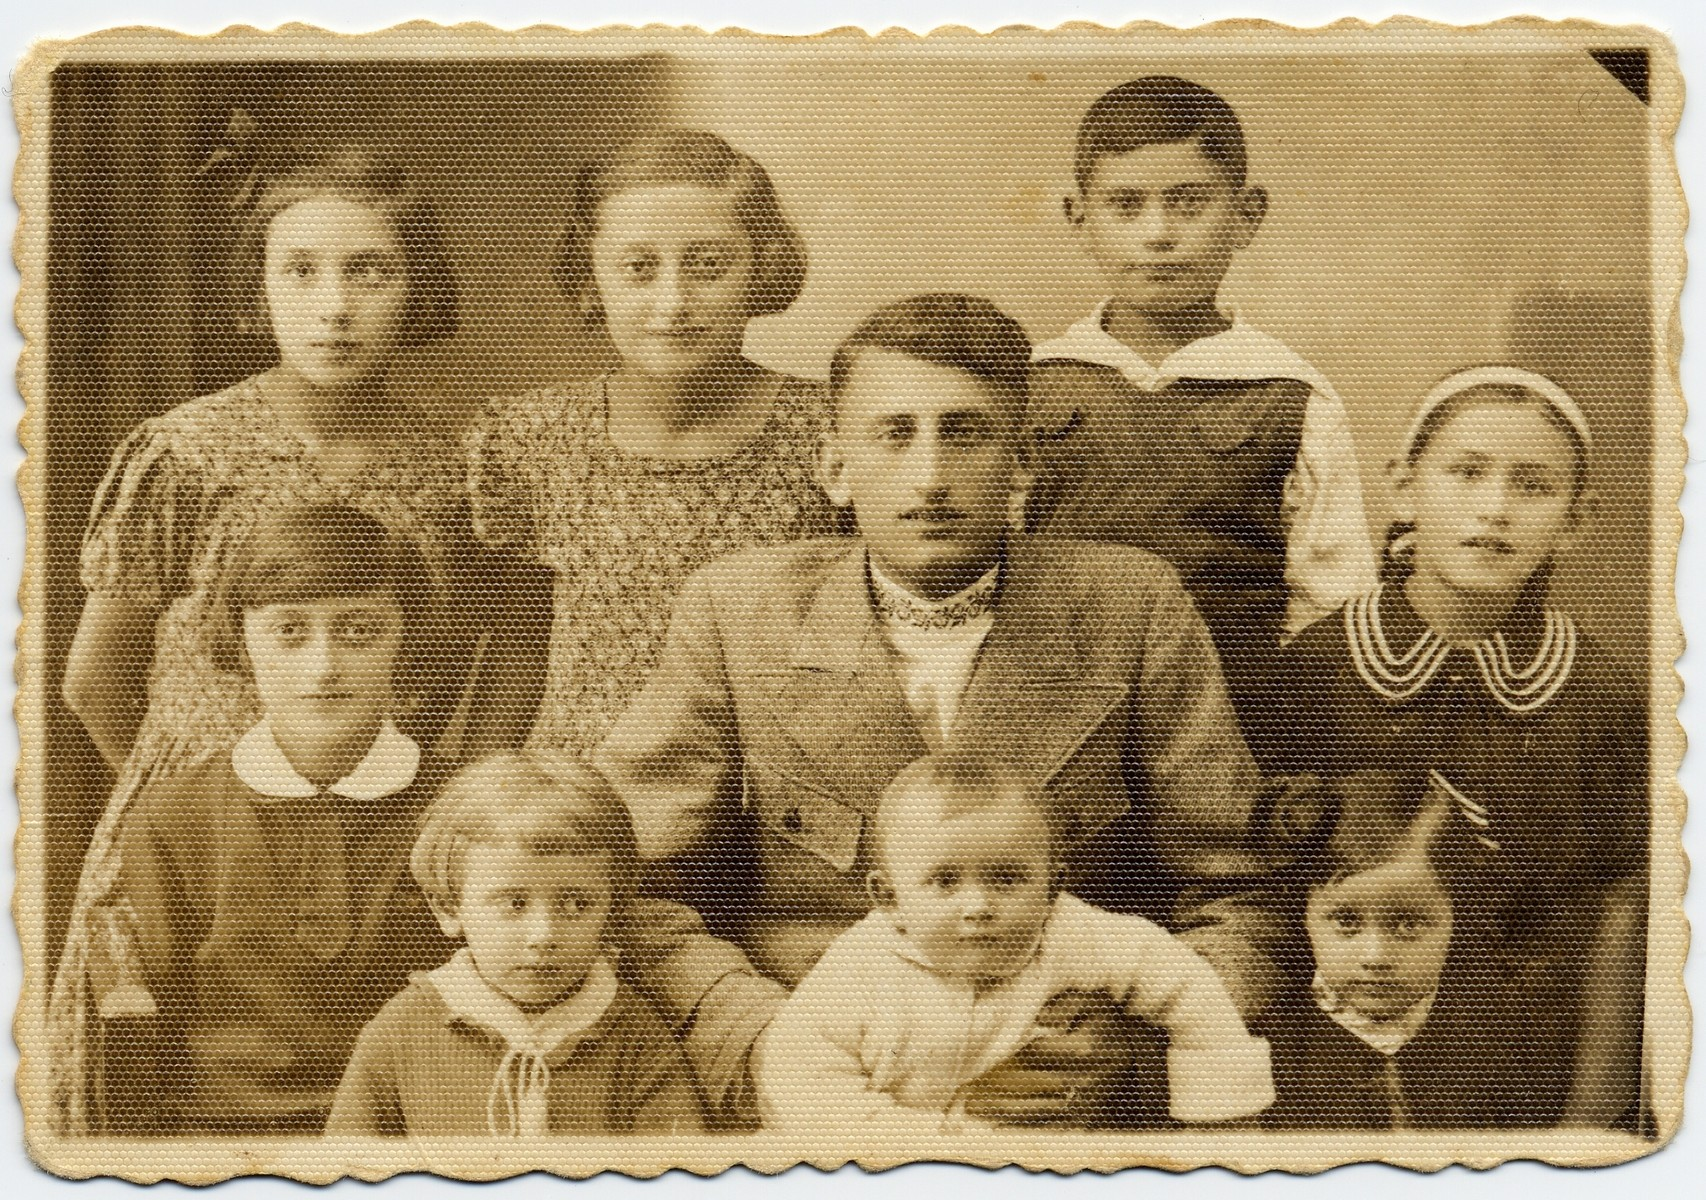 """Group portrait of Meir Holcman, donor's father, with his eight nieces and nephews.    The portrait was taken shortly before Meir left for Palestine.  All the children perished in Chelmno in 1942.  Pictured, standing in the back row, from left are: Hela Bauman, daughter of Golda Itta; Andzia (Chana) Holcman, daughter of Josef; Eli Holcman, son of """"Bucik."""" In the front row, from left are: Szajna Holcman, daughter of Josef; Chana Holcman, daughter of Moshe Aron; Eli Holcman, son of Abram Icchak and Chana Holcman, daughter of Hersz Lejzor."""